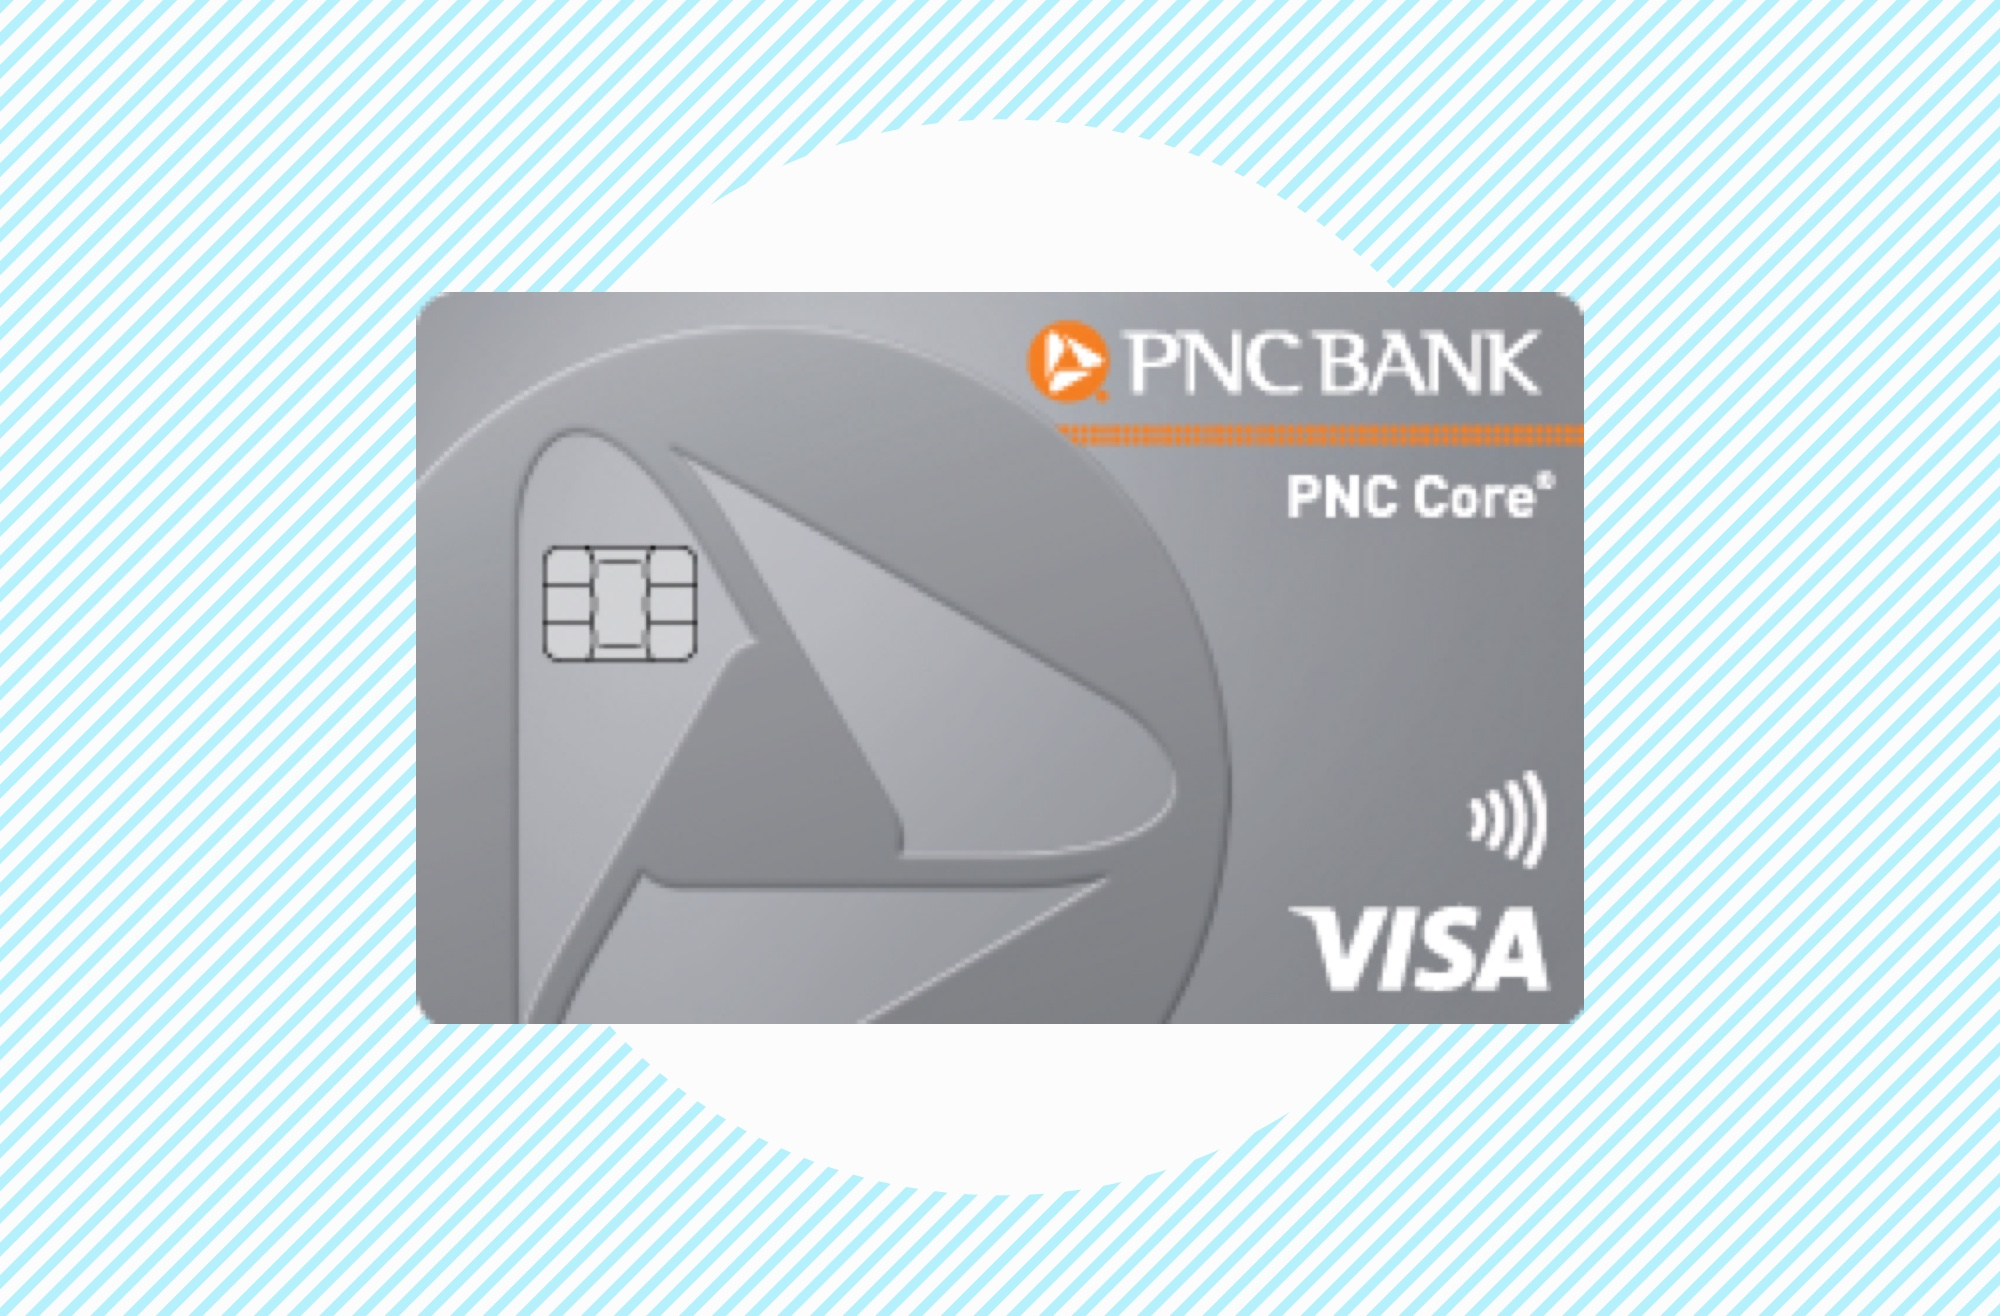 Photo to accompany PNC core visa review.